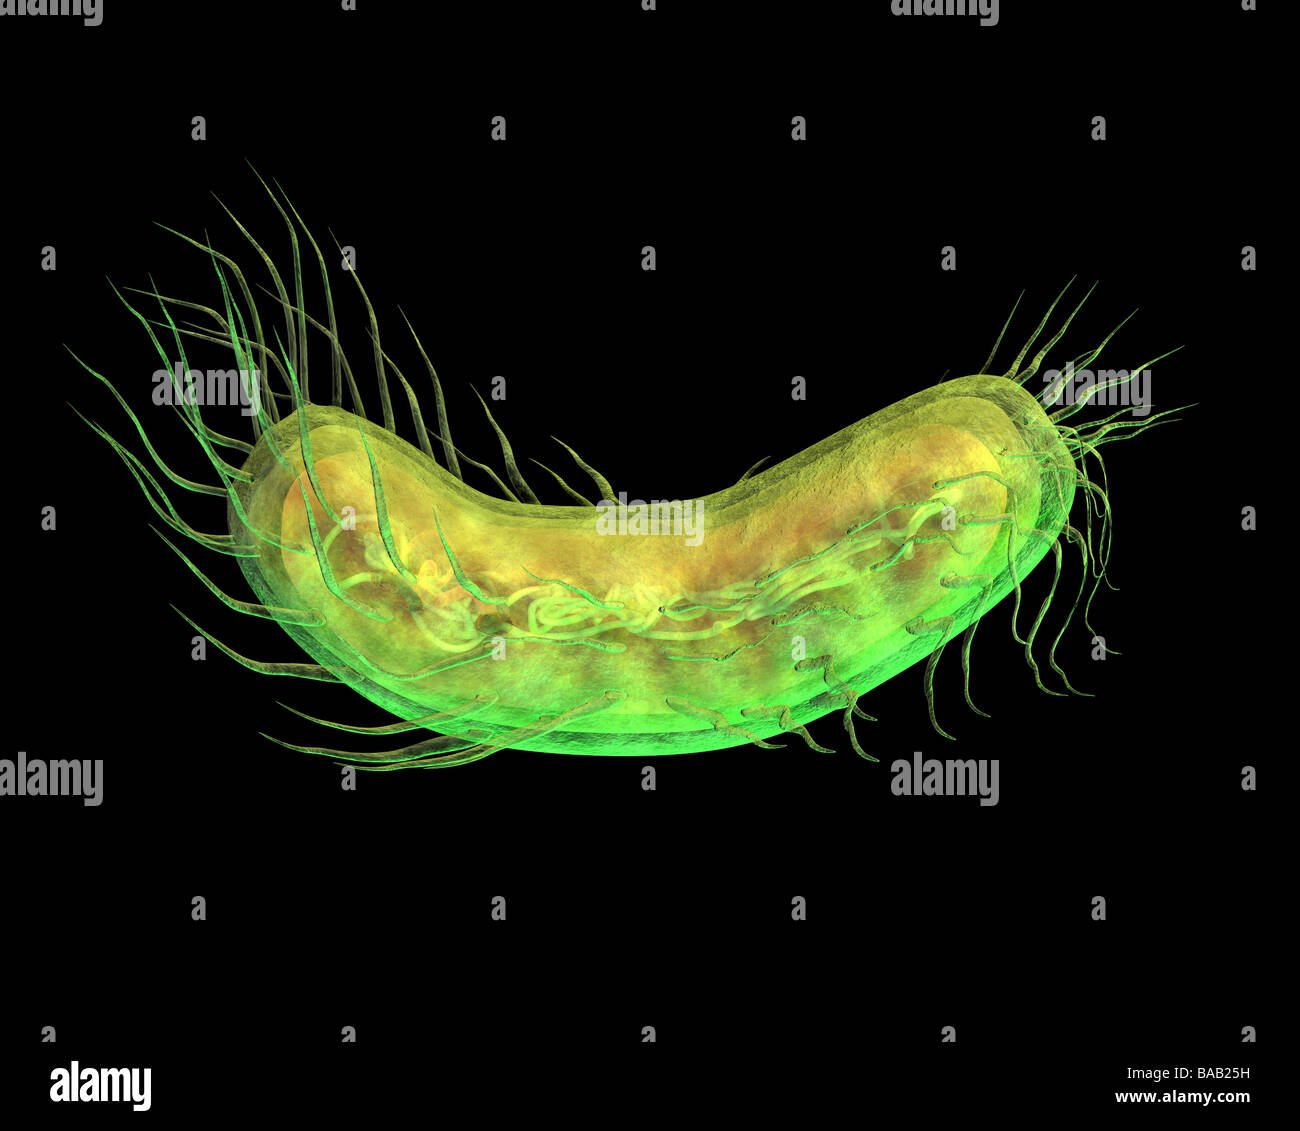 Bacteria - Stock Image